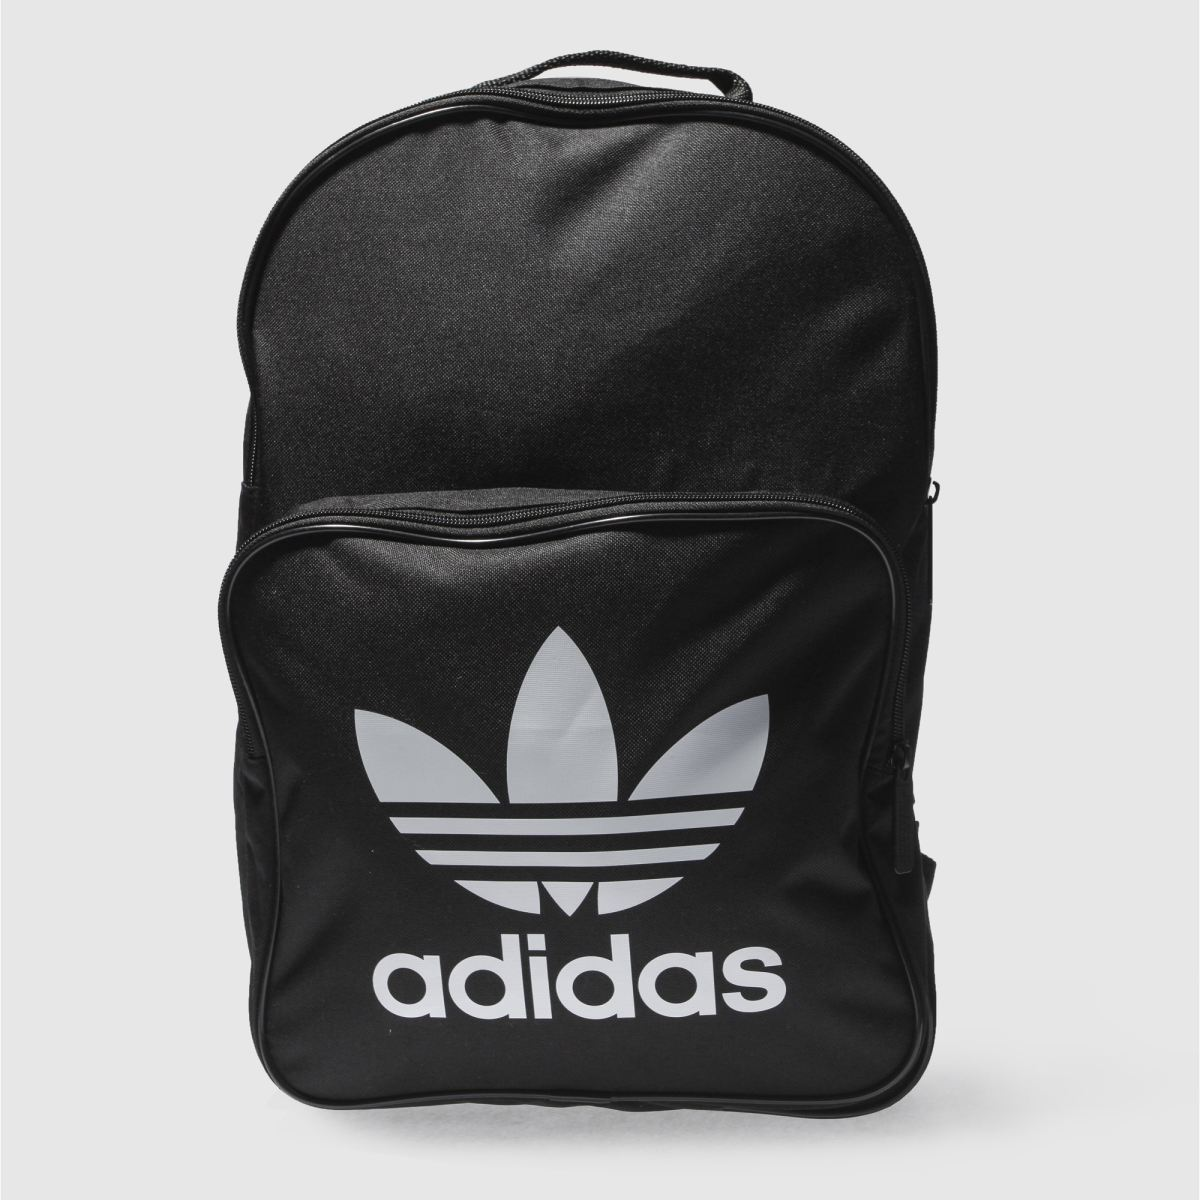 Buy adidas school bags for boys   OFF33% Discounted 3e99a589e9bcf